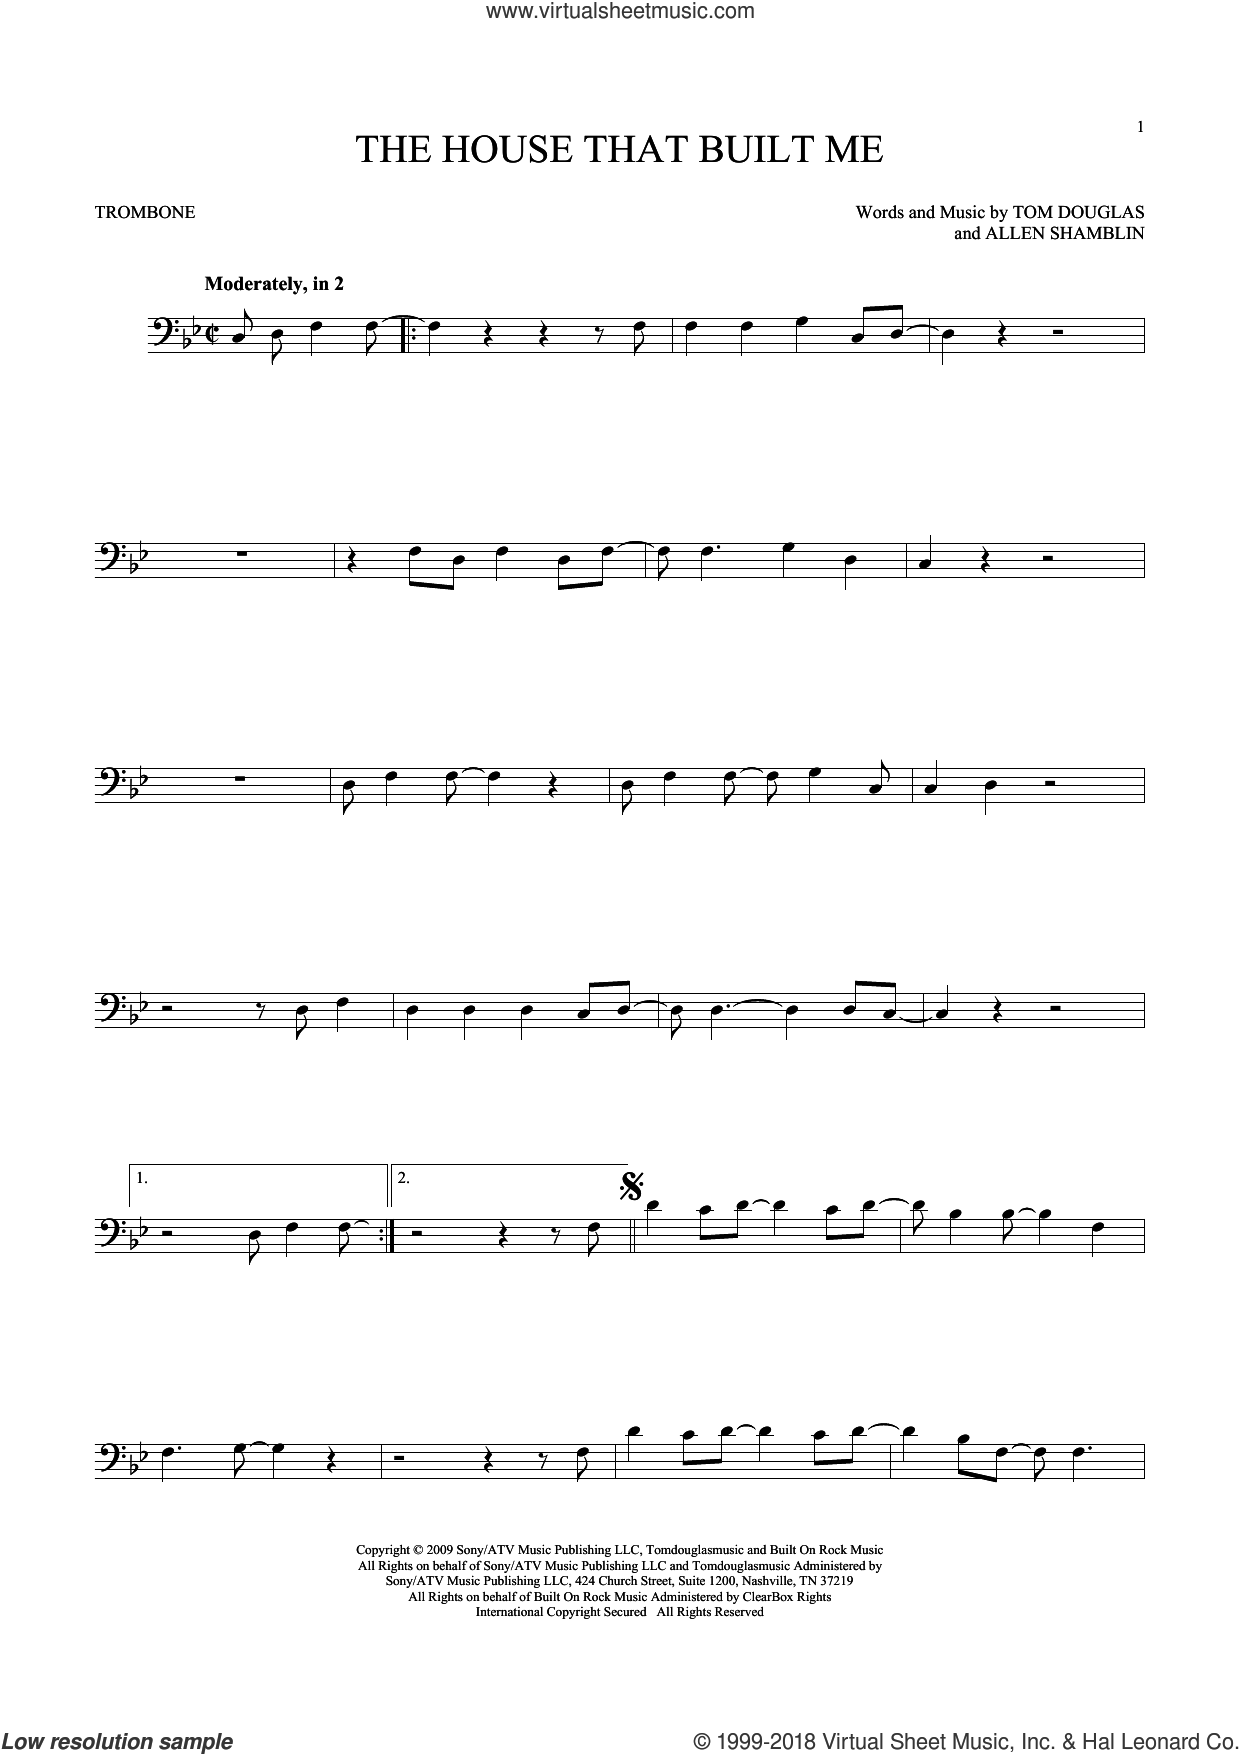 The House That Built Me sheet music for trombone solo by Miranda Lambert, Allen Shamblin and Tom Douglas, intermediate trombone. Score Image Preview.